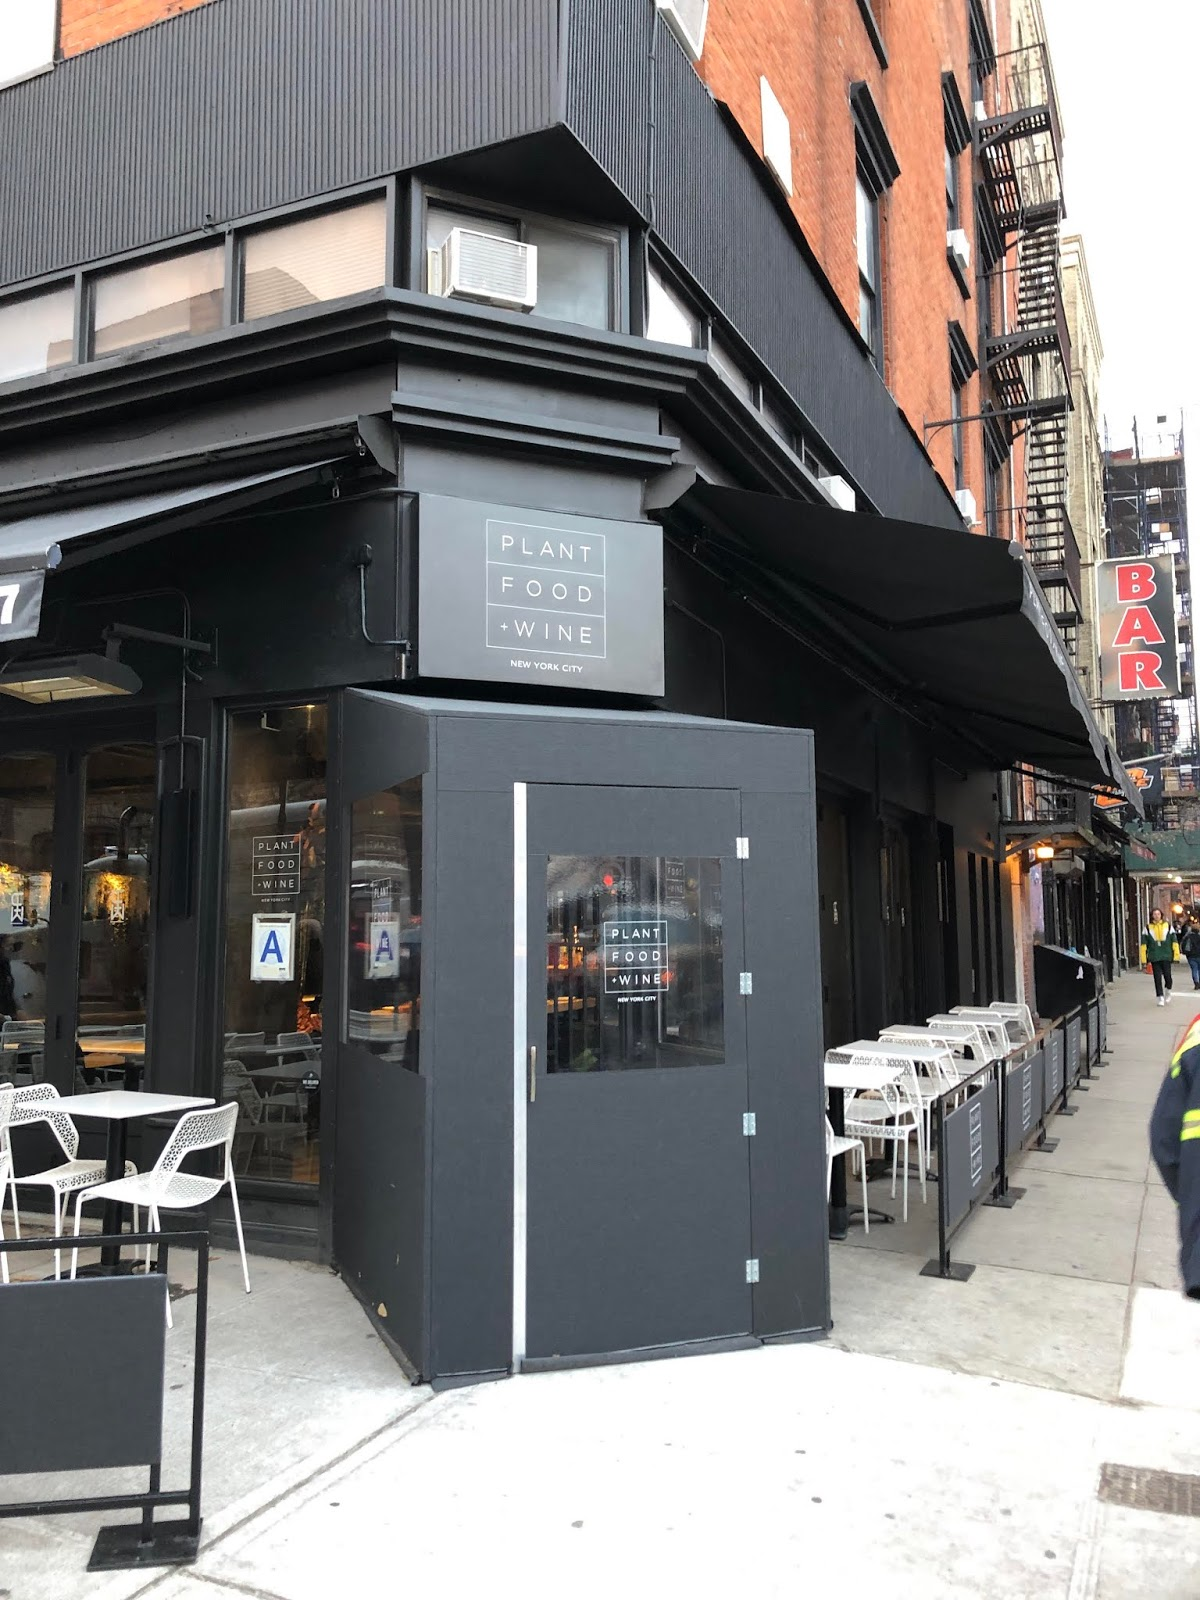 Cucina Restaurant In Nyc Ev Grieve Matthew Kenney Expands His 2nd Avenue Plant Based